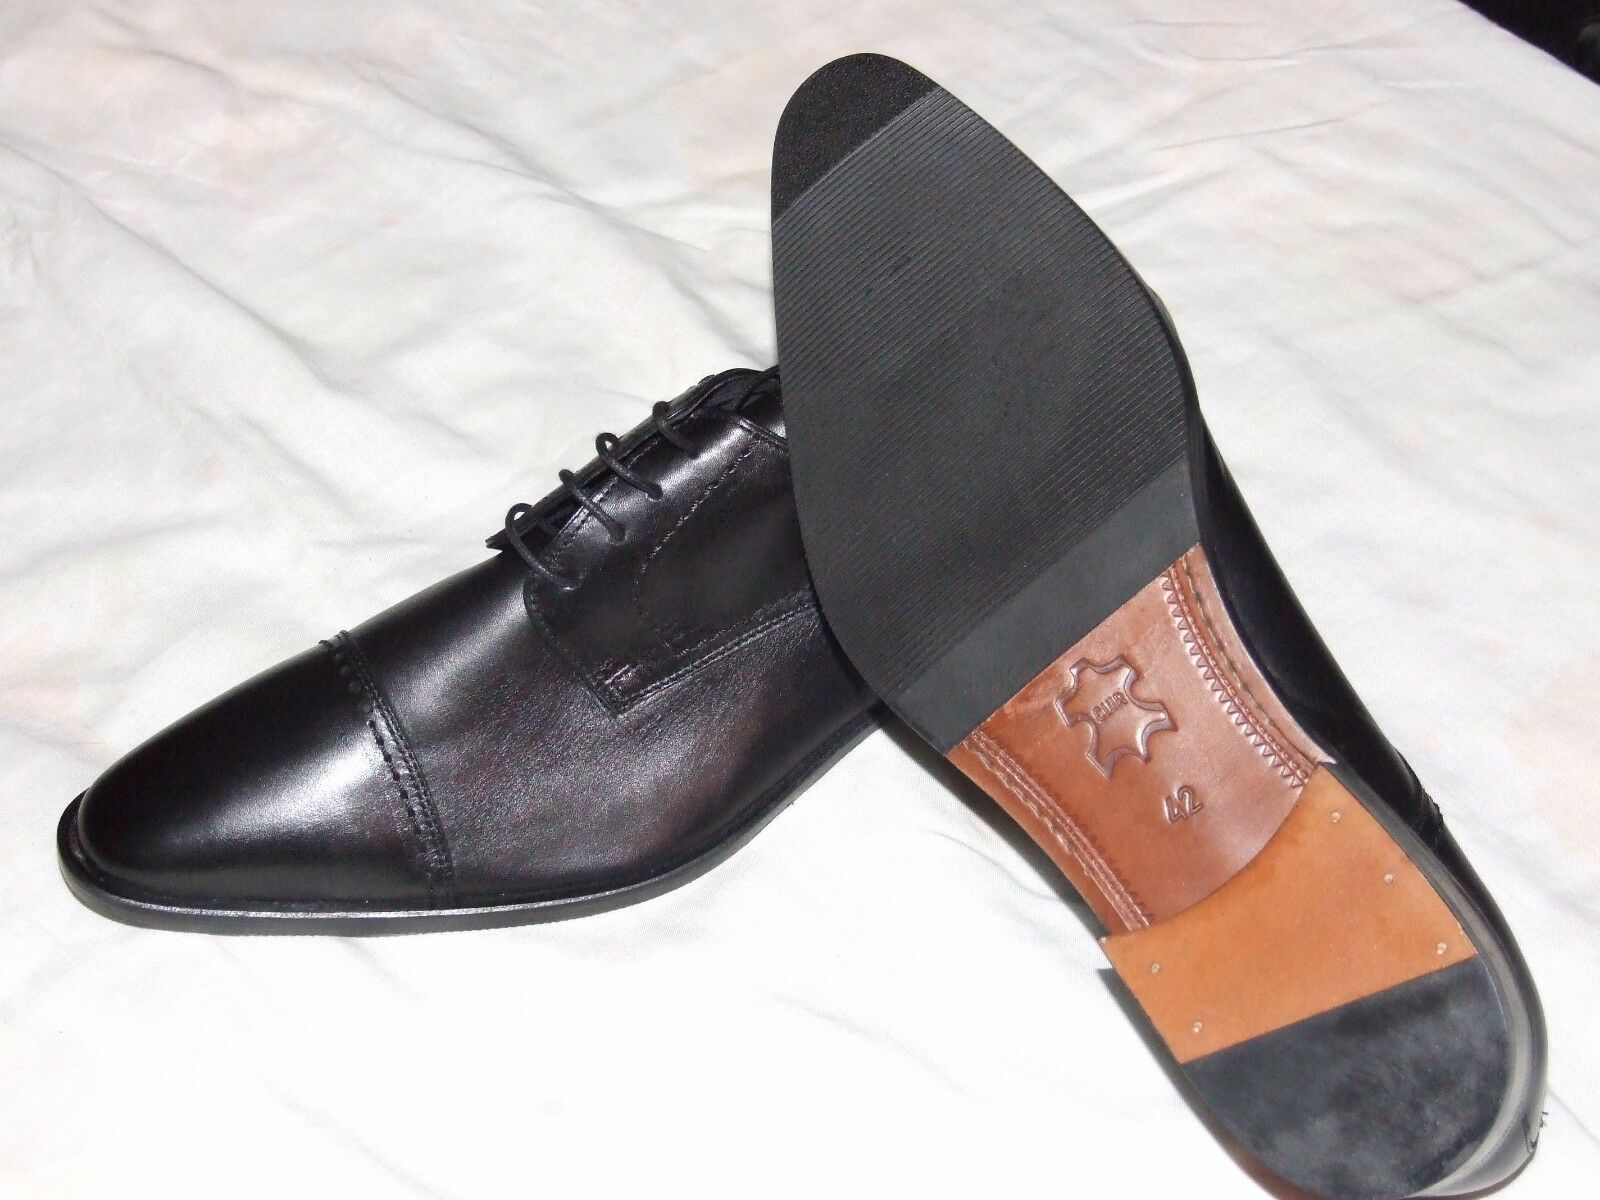 Leater shoes Cuir in Black For Men  size 41-42